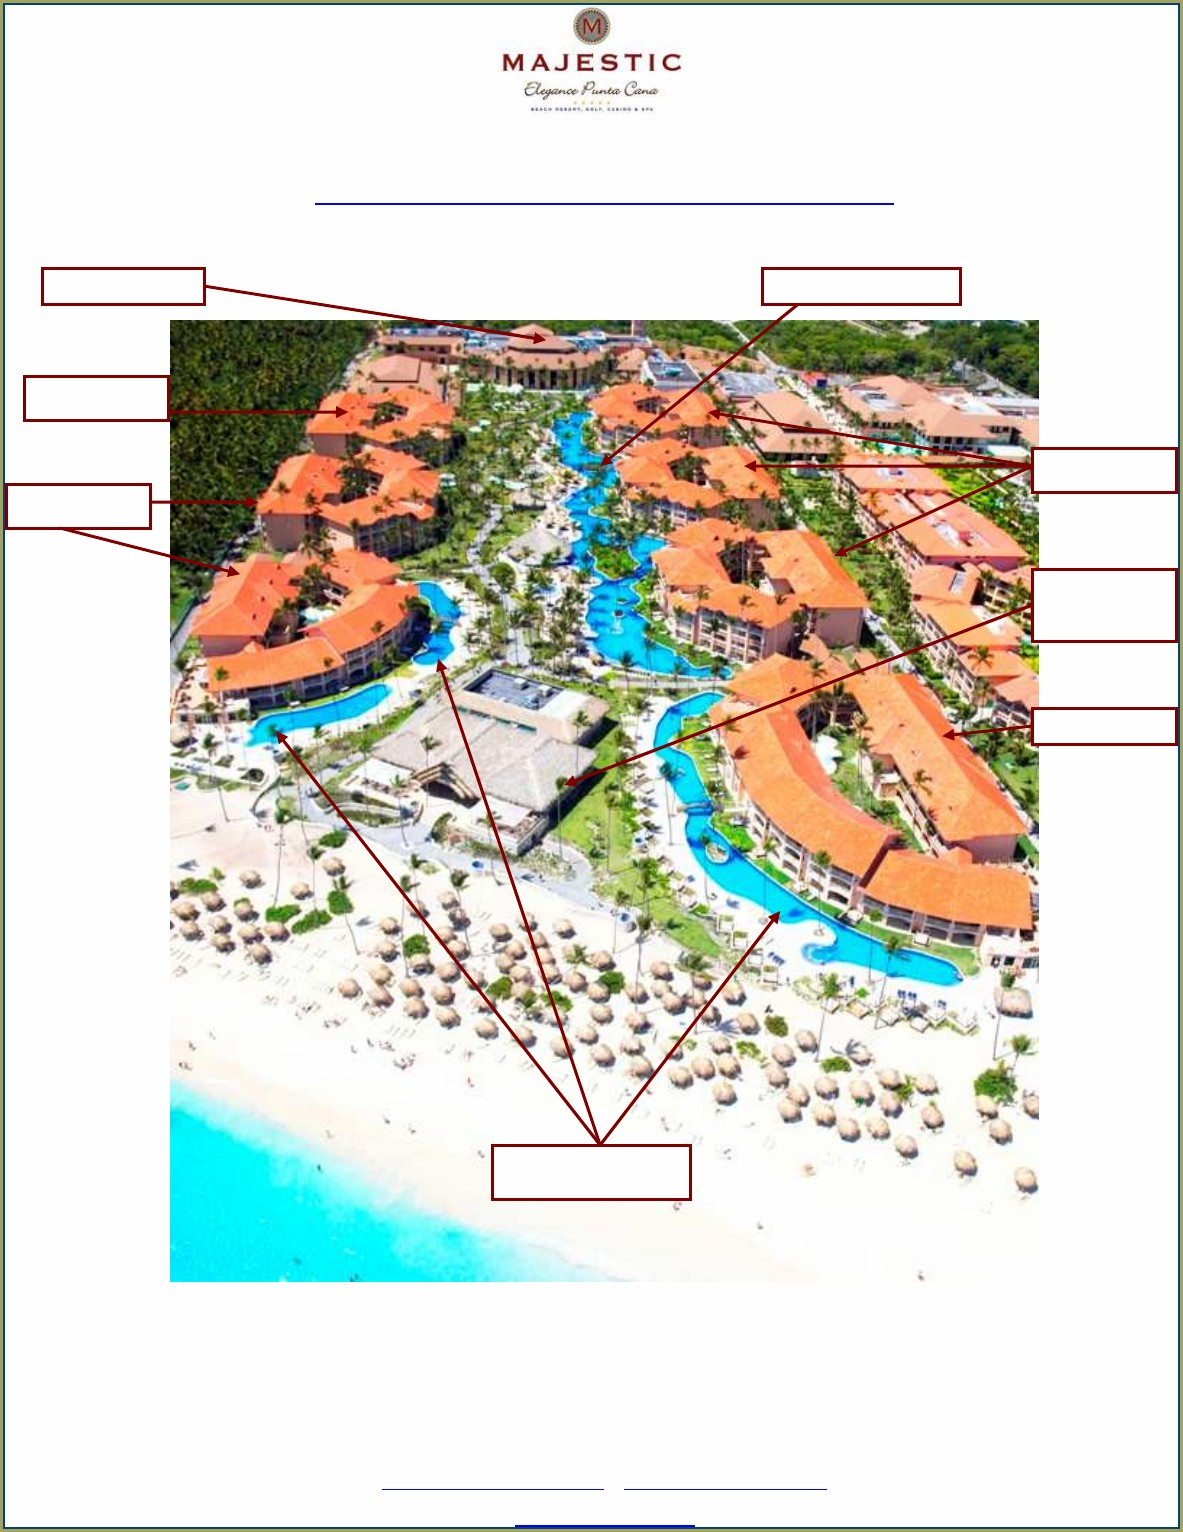 Majestic Elegance Punta Cana Map Of Grounds